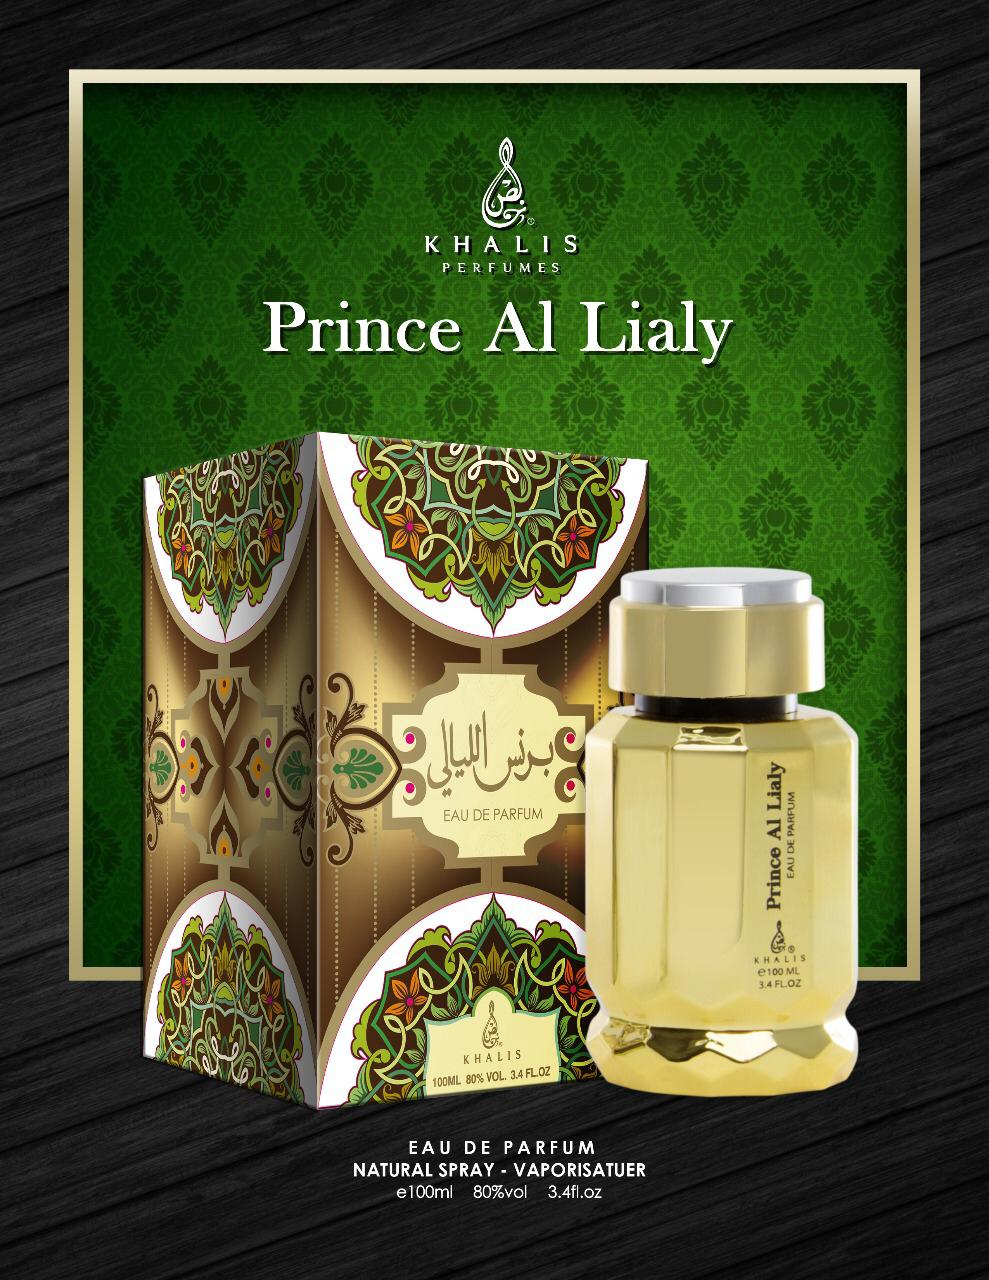 khalis-prince-al-lialy-perfume-for-men-and-women-100-ml-edp